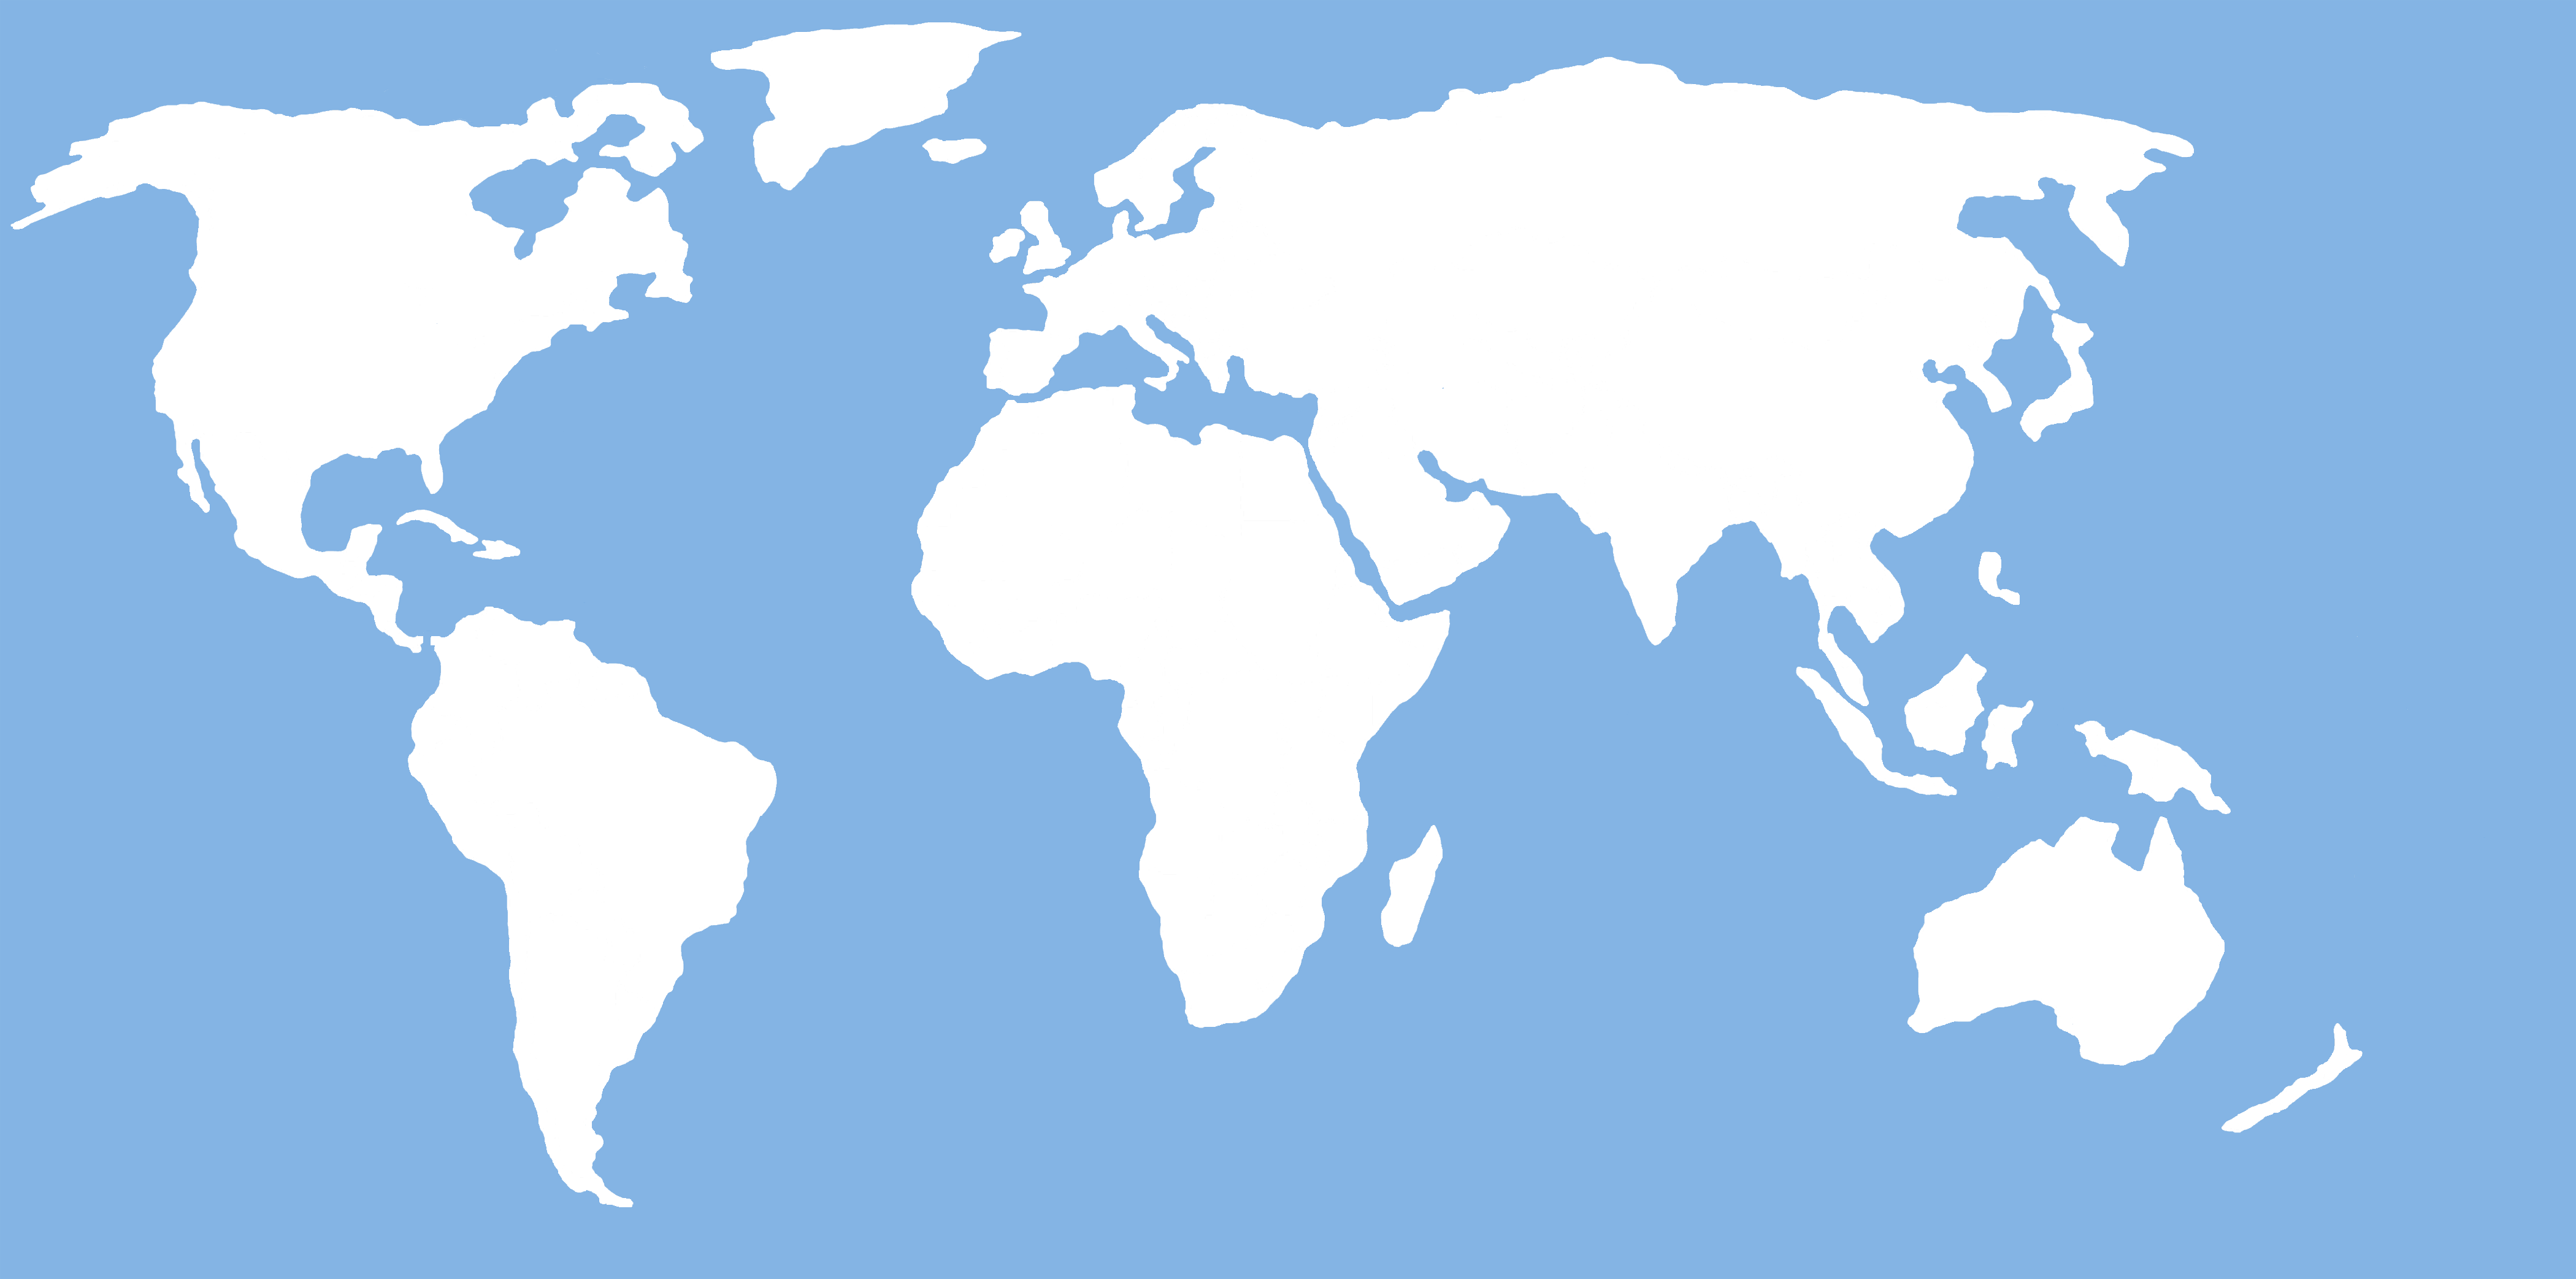 World Map For Wall   Free Images At Clker Com   Vector Clip Art Online